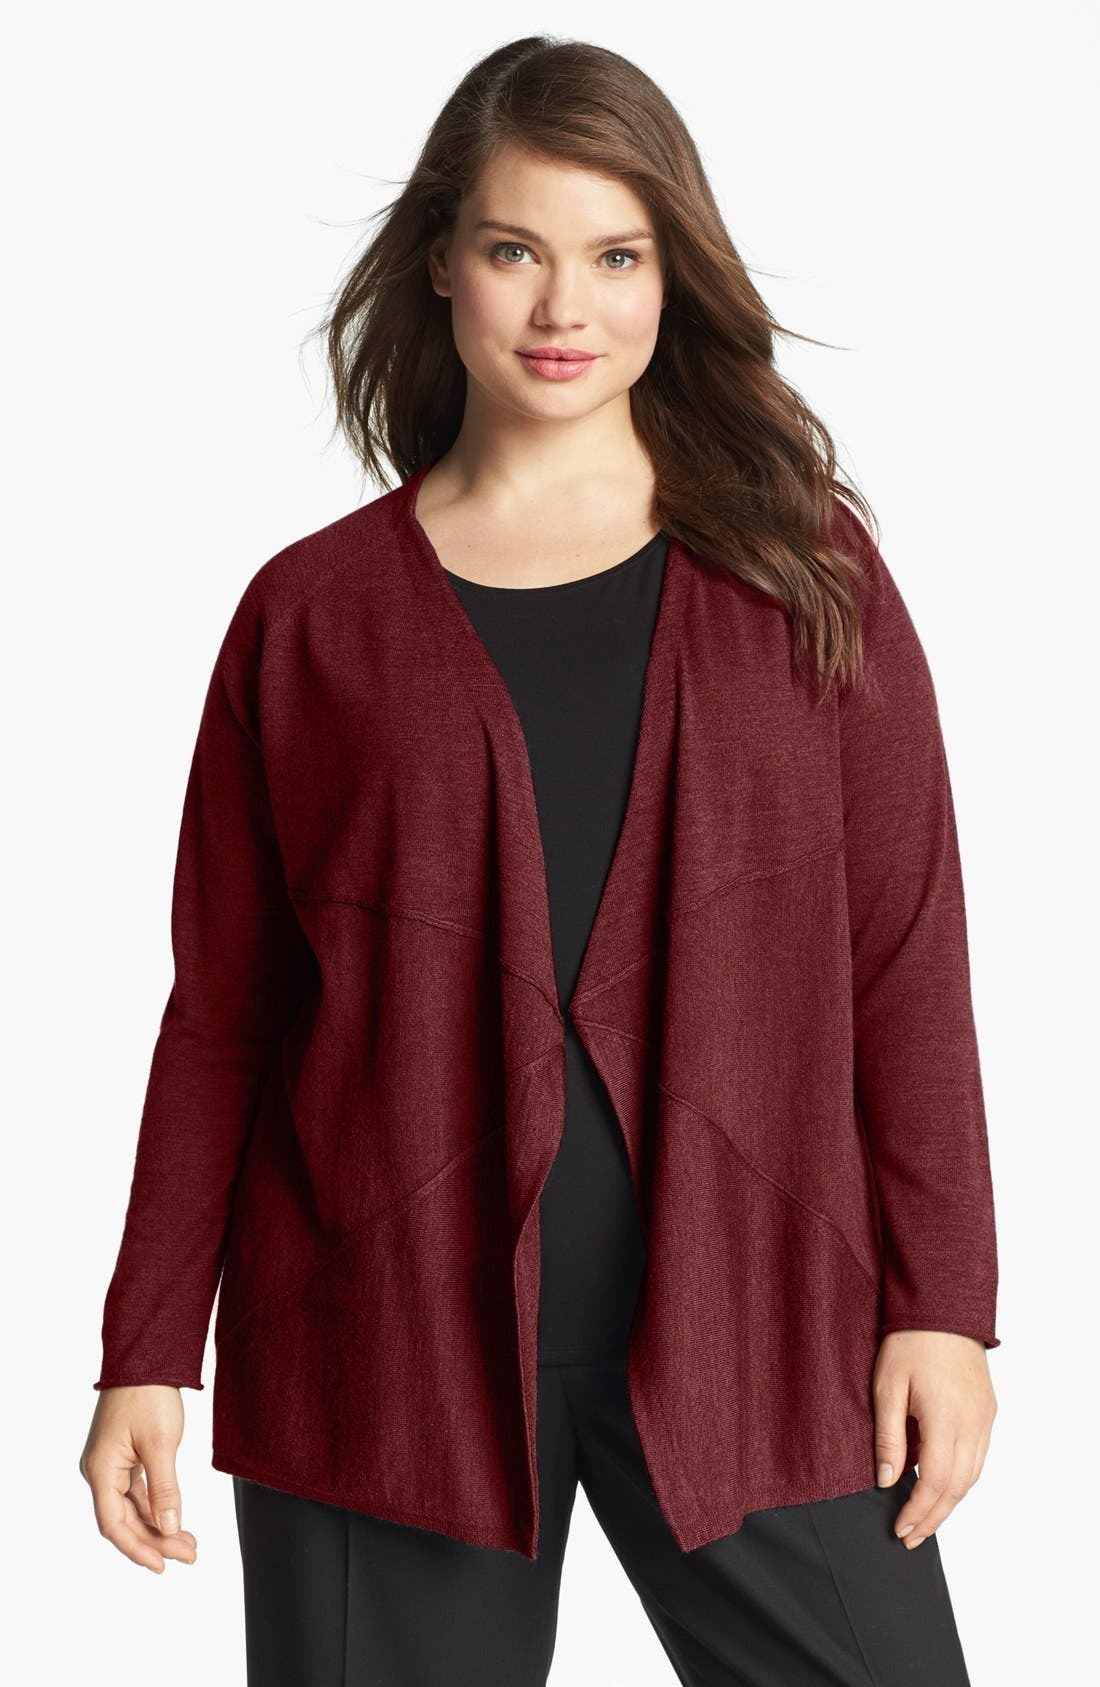 Alternate Image 1 Selected - Eileen Fisher Merino Wool Open Cardigan (Plus Size)